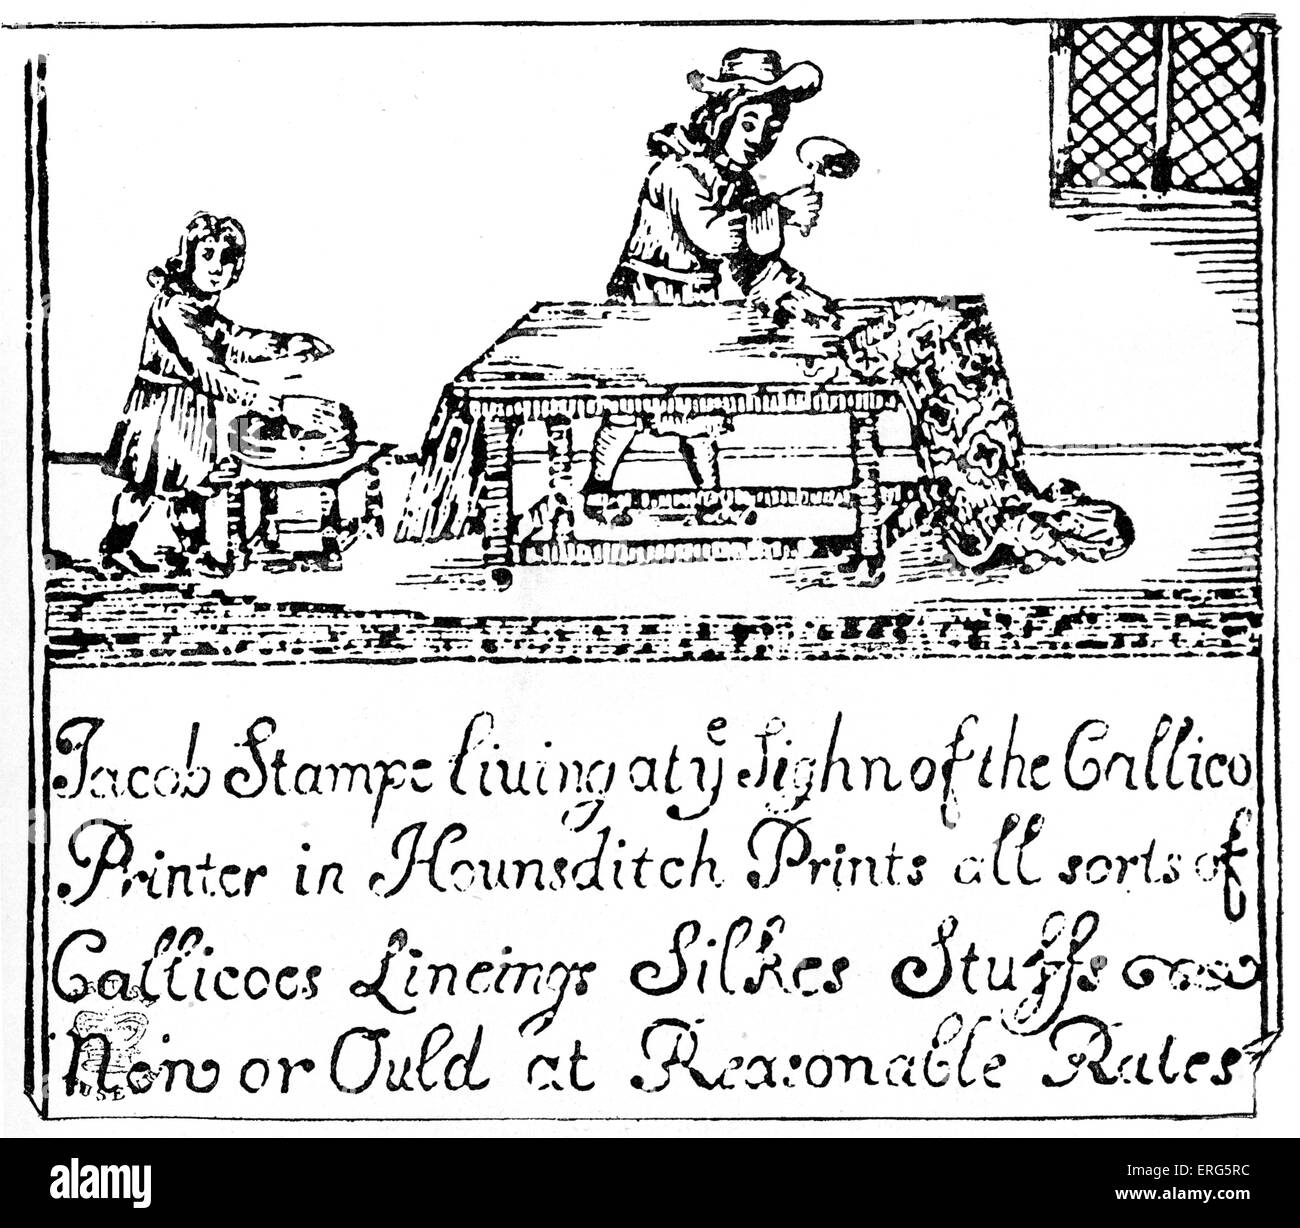 Stamping Calico. British craftsman printing material in the time of James II, 6 February 1685 –  23 December 1688. - Stock Image